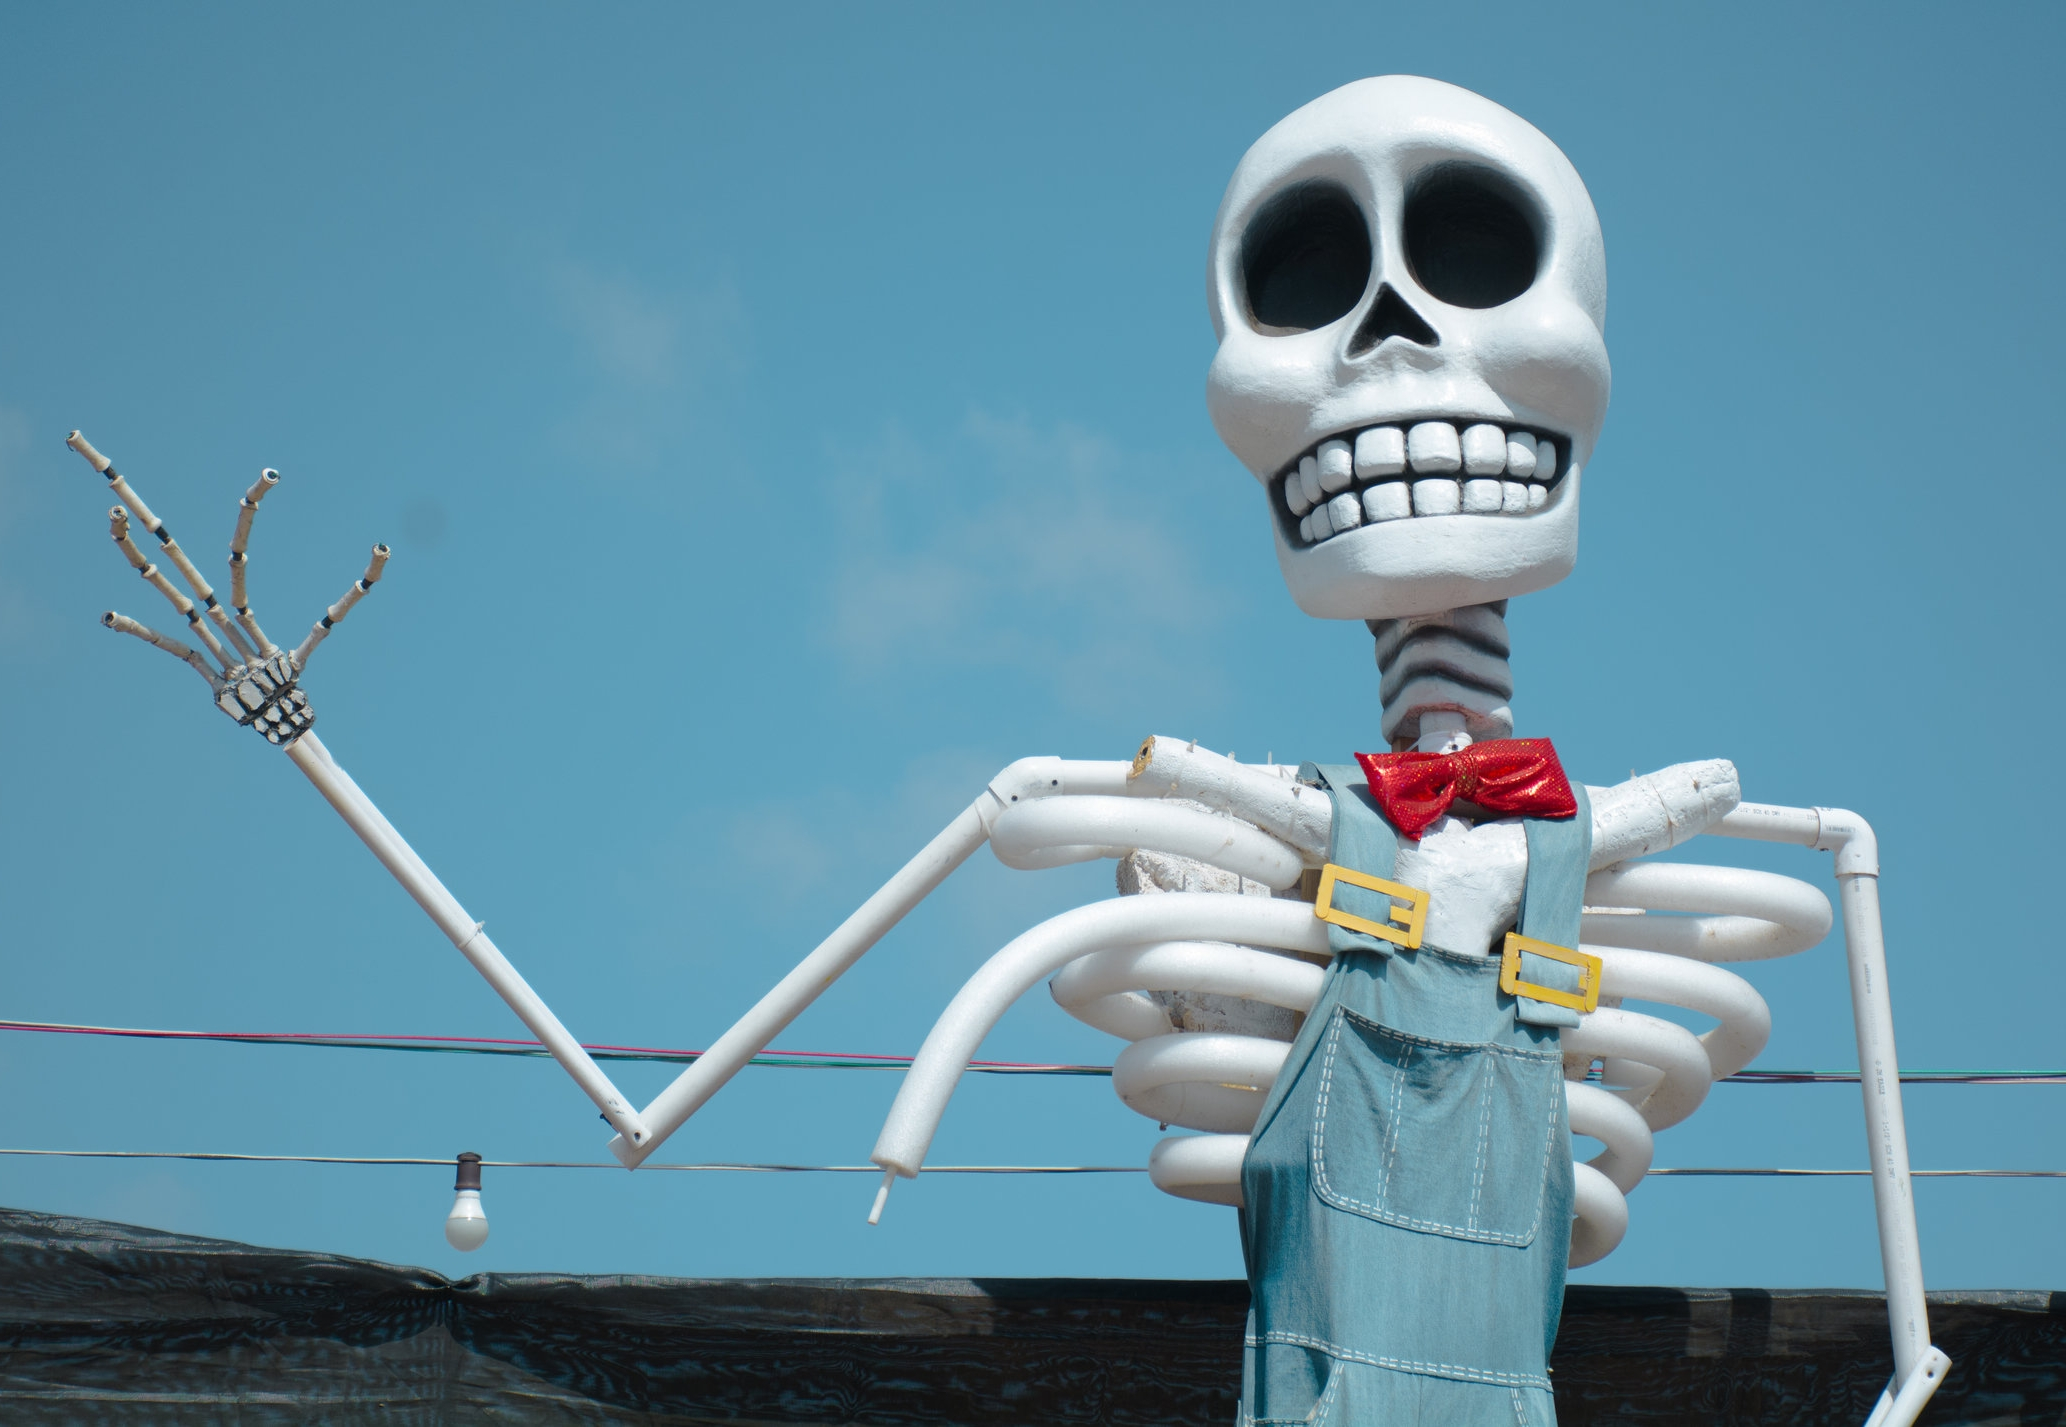 Mr.Bones the face for Mr.Bones Pumpkin Patch has been brought to life and is one of the unique art pieces that take days to construct hovering over the skies of their annual patch in Culver City, California on October 8th, 2019 located on the corner of Jefferson Blvd. and College Road. (Adriel Navarro/Corsair Staff)